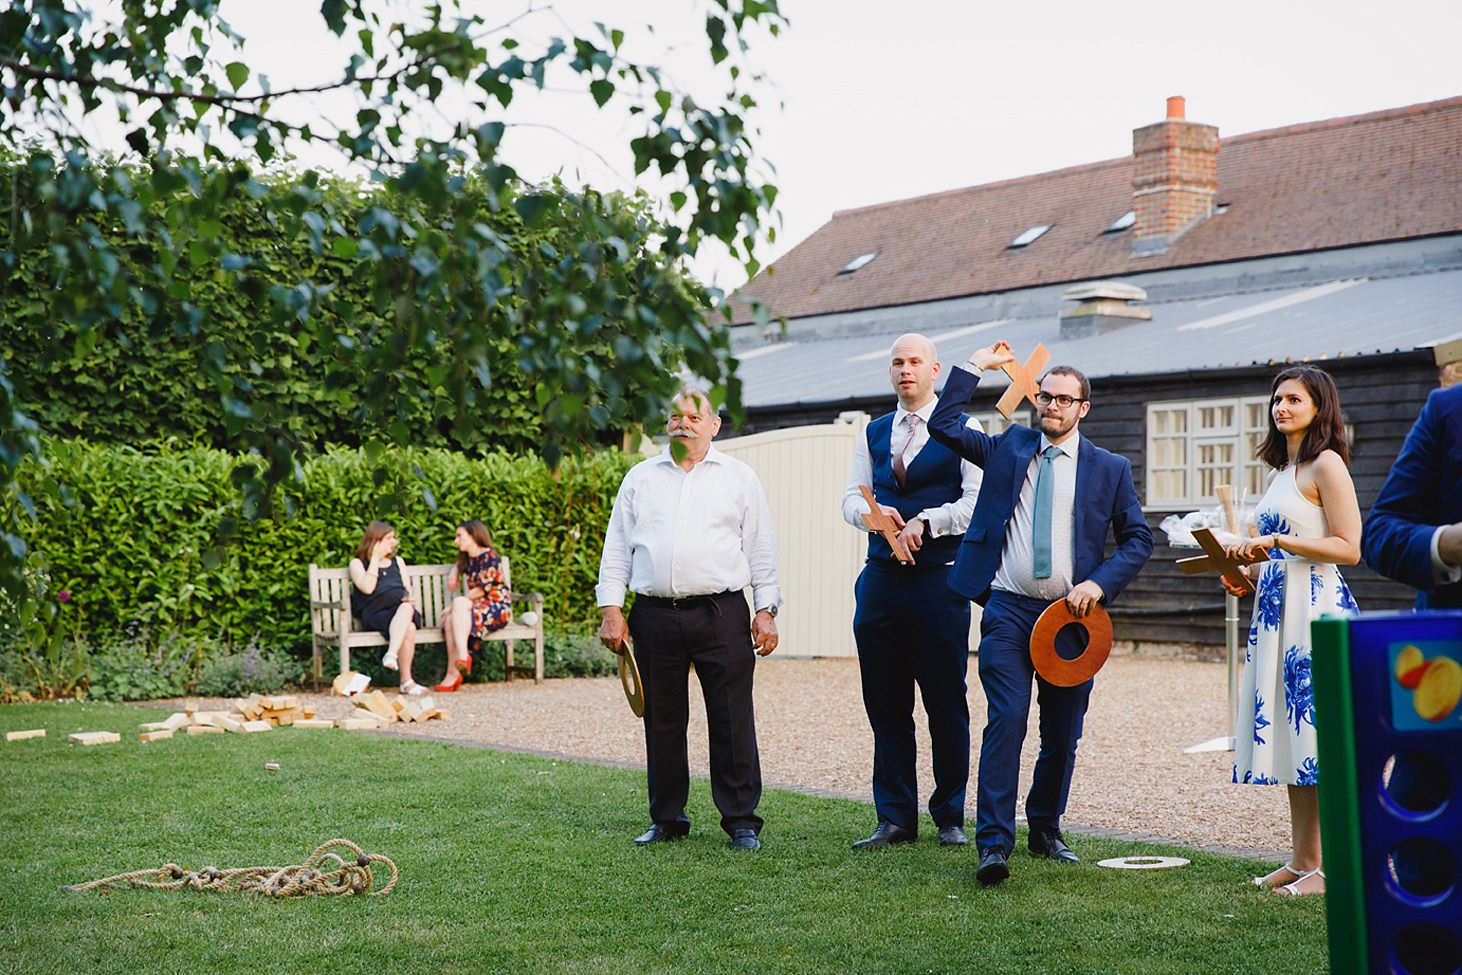 gate street barn wedding photography wedding guests playing games